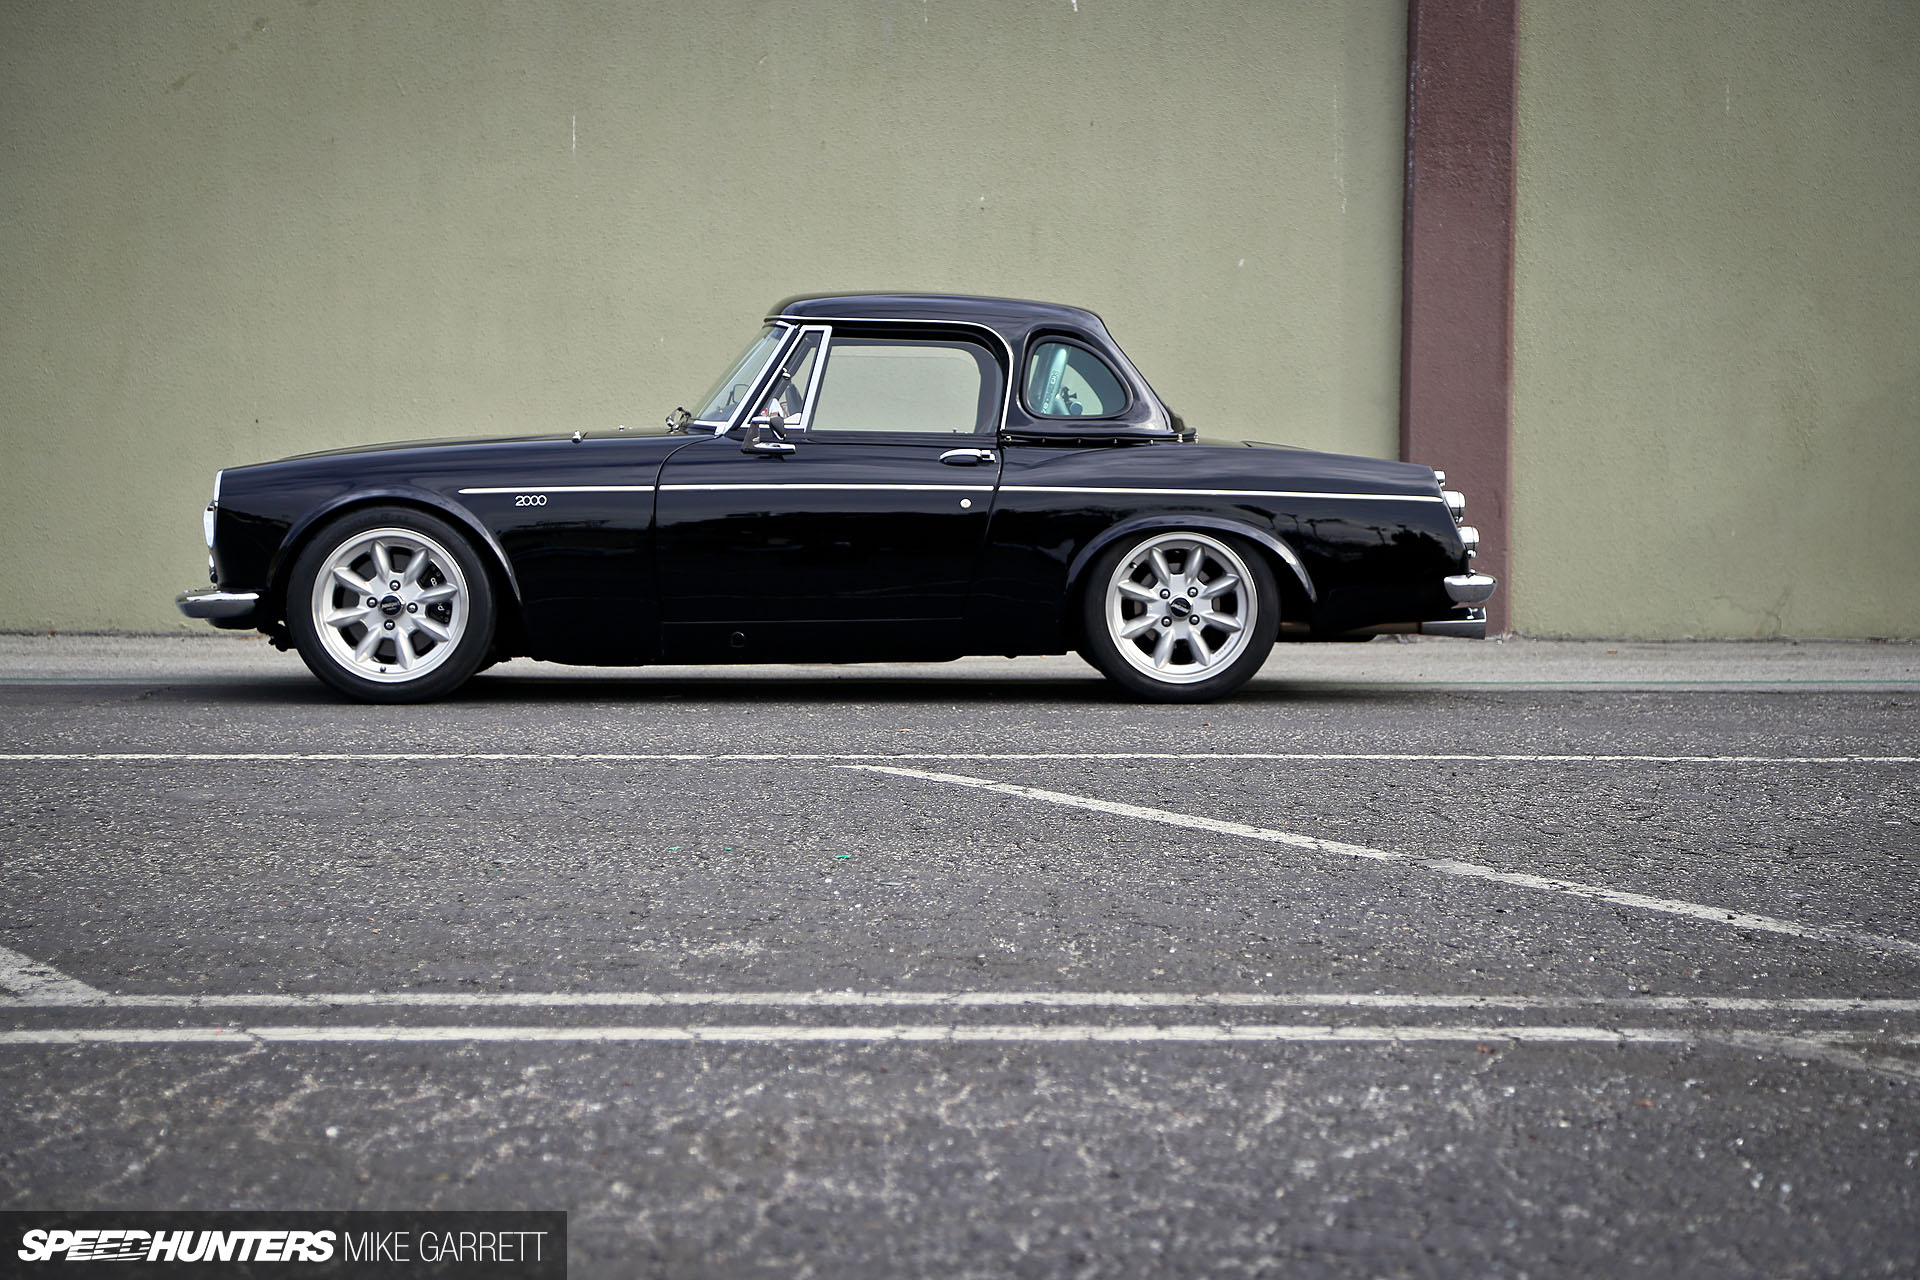 Sleeper Car Wallpaper A Love Letter To The Datsun Roadster Speedhunters